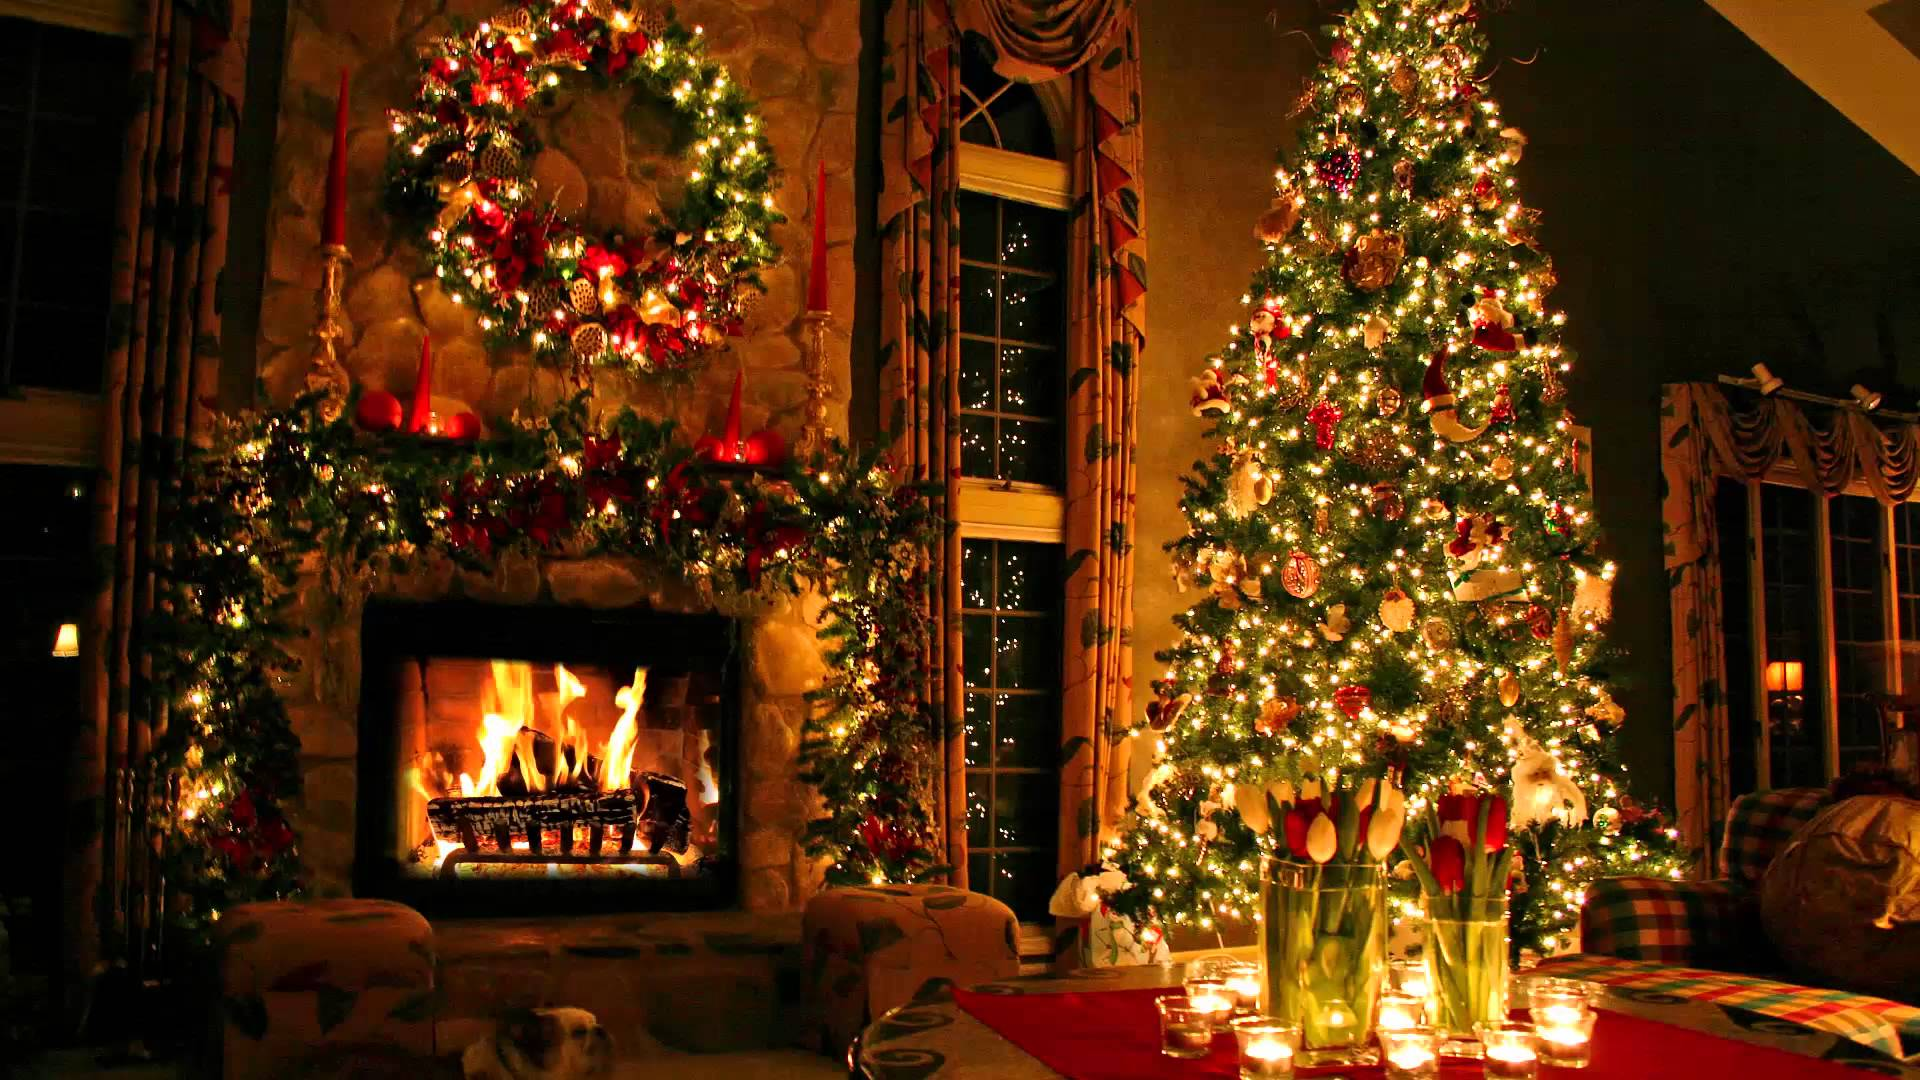 1920x1080 Holiday Christmas wallpapers (Desktop, Phone, Tablet) - Awesome ...